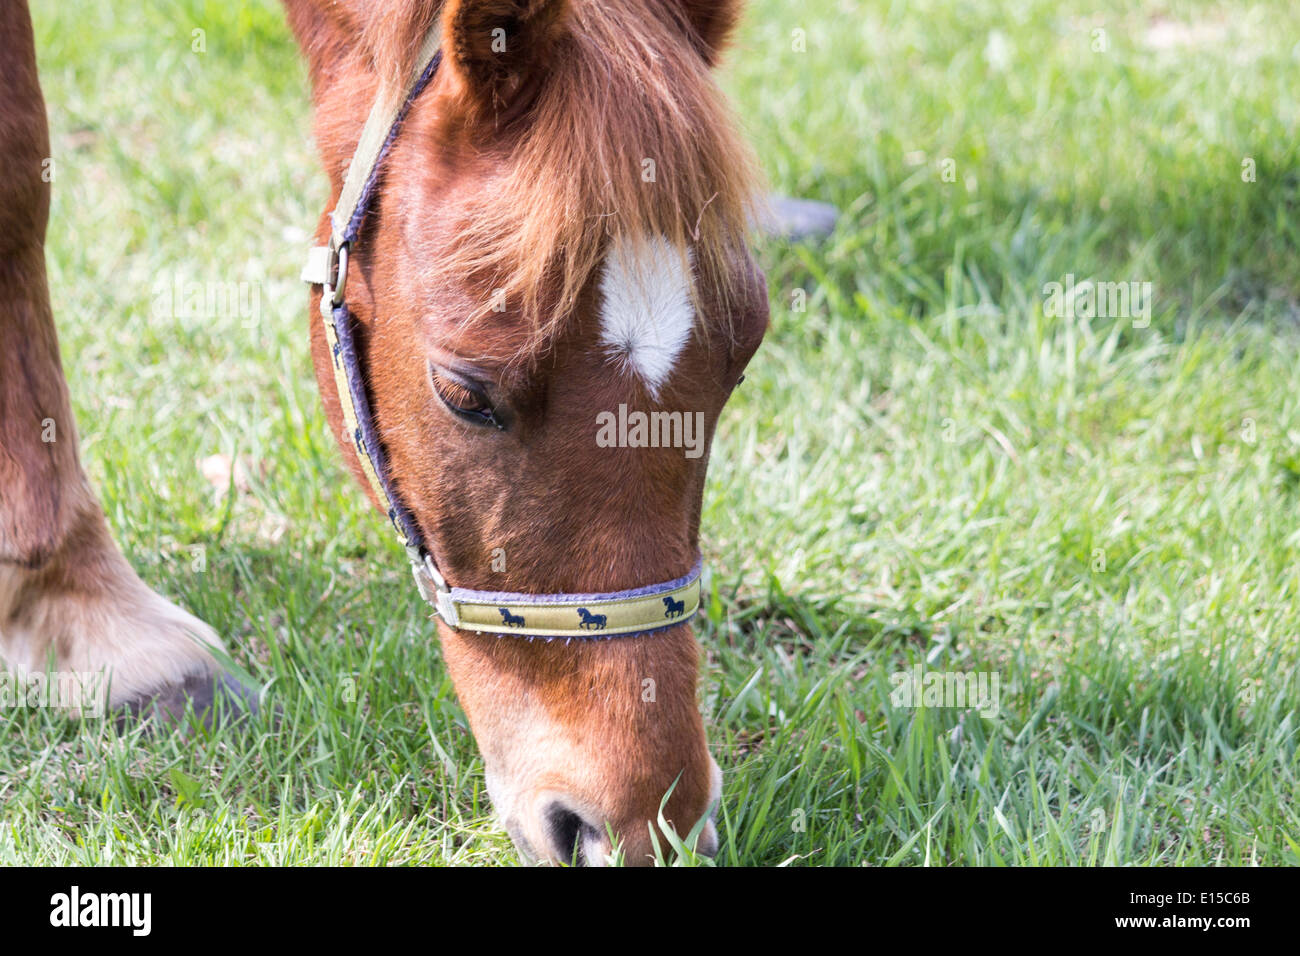 Chestnut sorrel horse grazing on grass wearing halter. Stock Photo